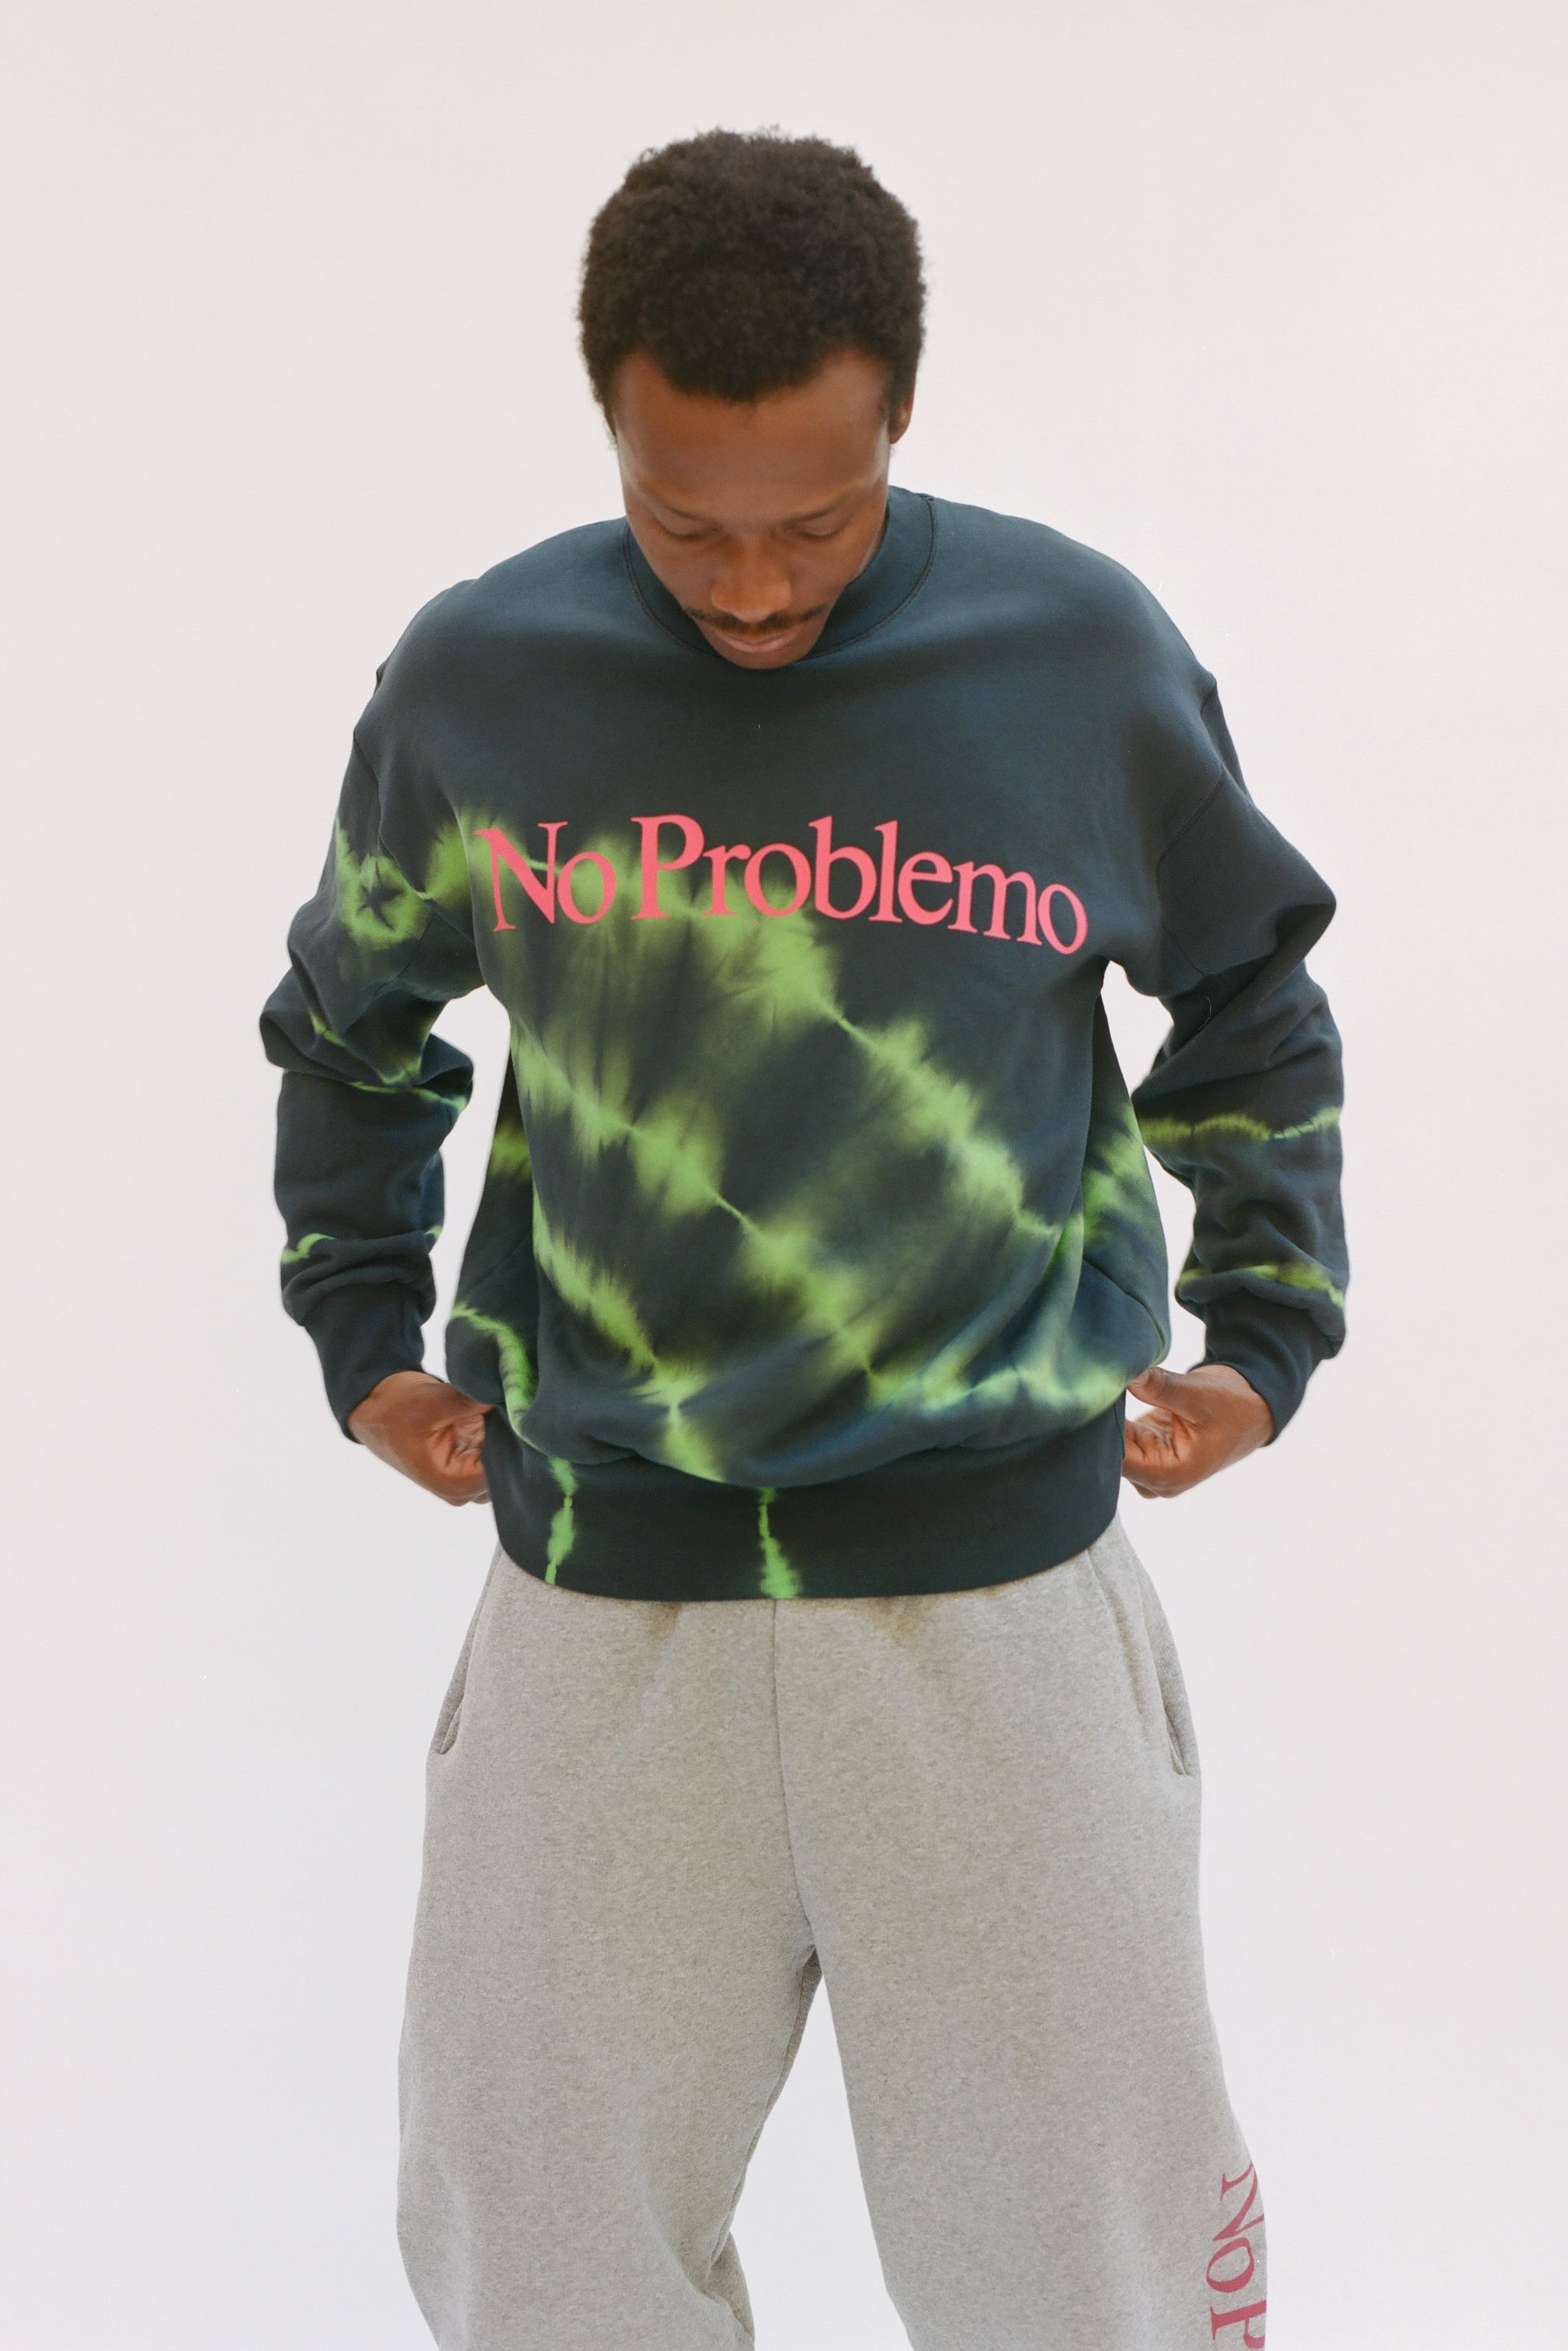 Load image into Gallery viewer, Tie-Dye No Problemo Sweatshirt